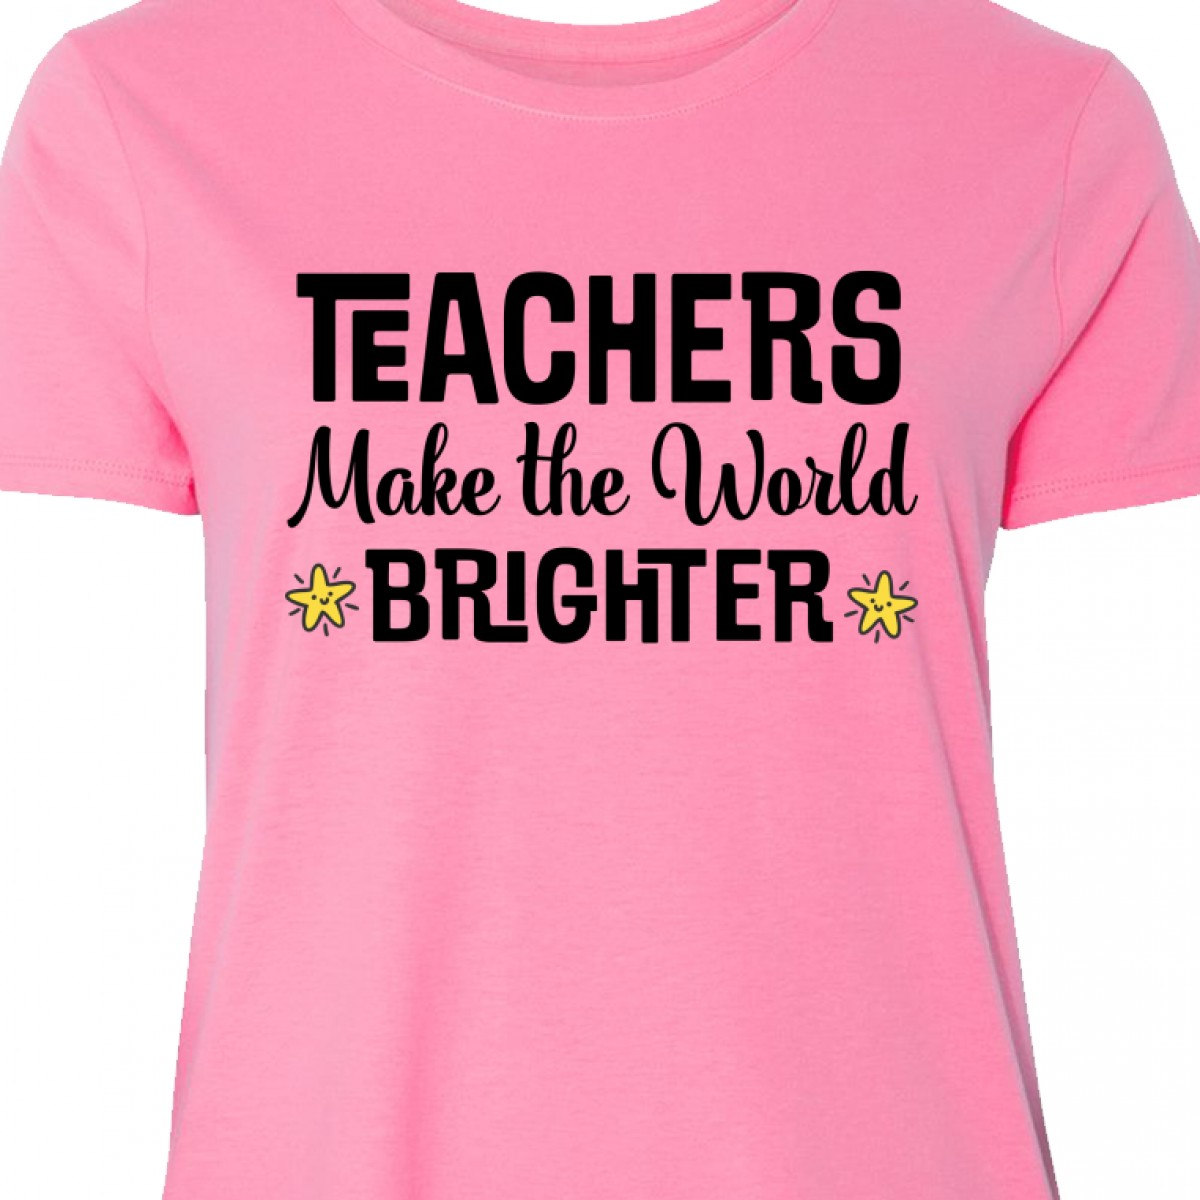 Inktastic Teach Love And Inspire With Hearts Women/'s T-Shirt School Teachers For